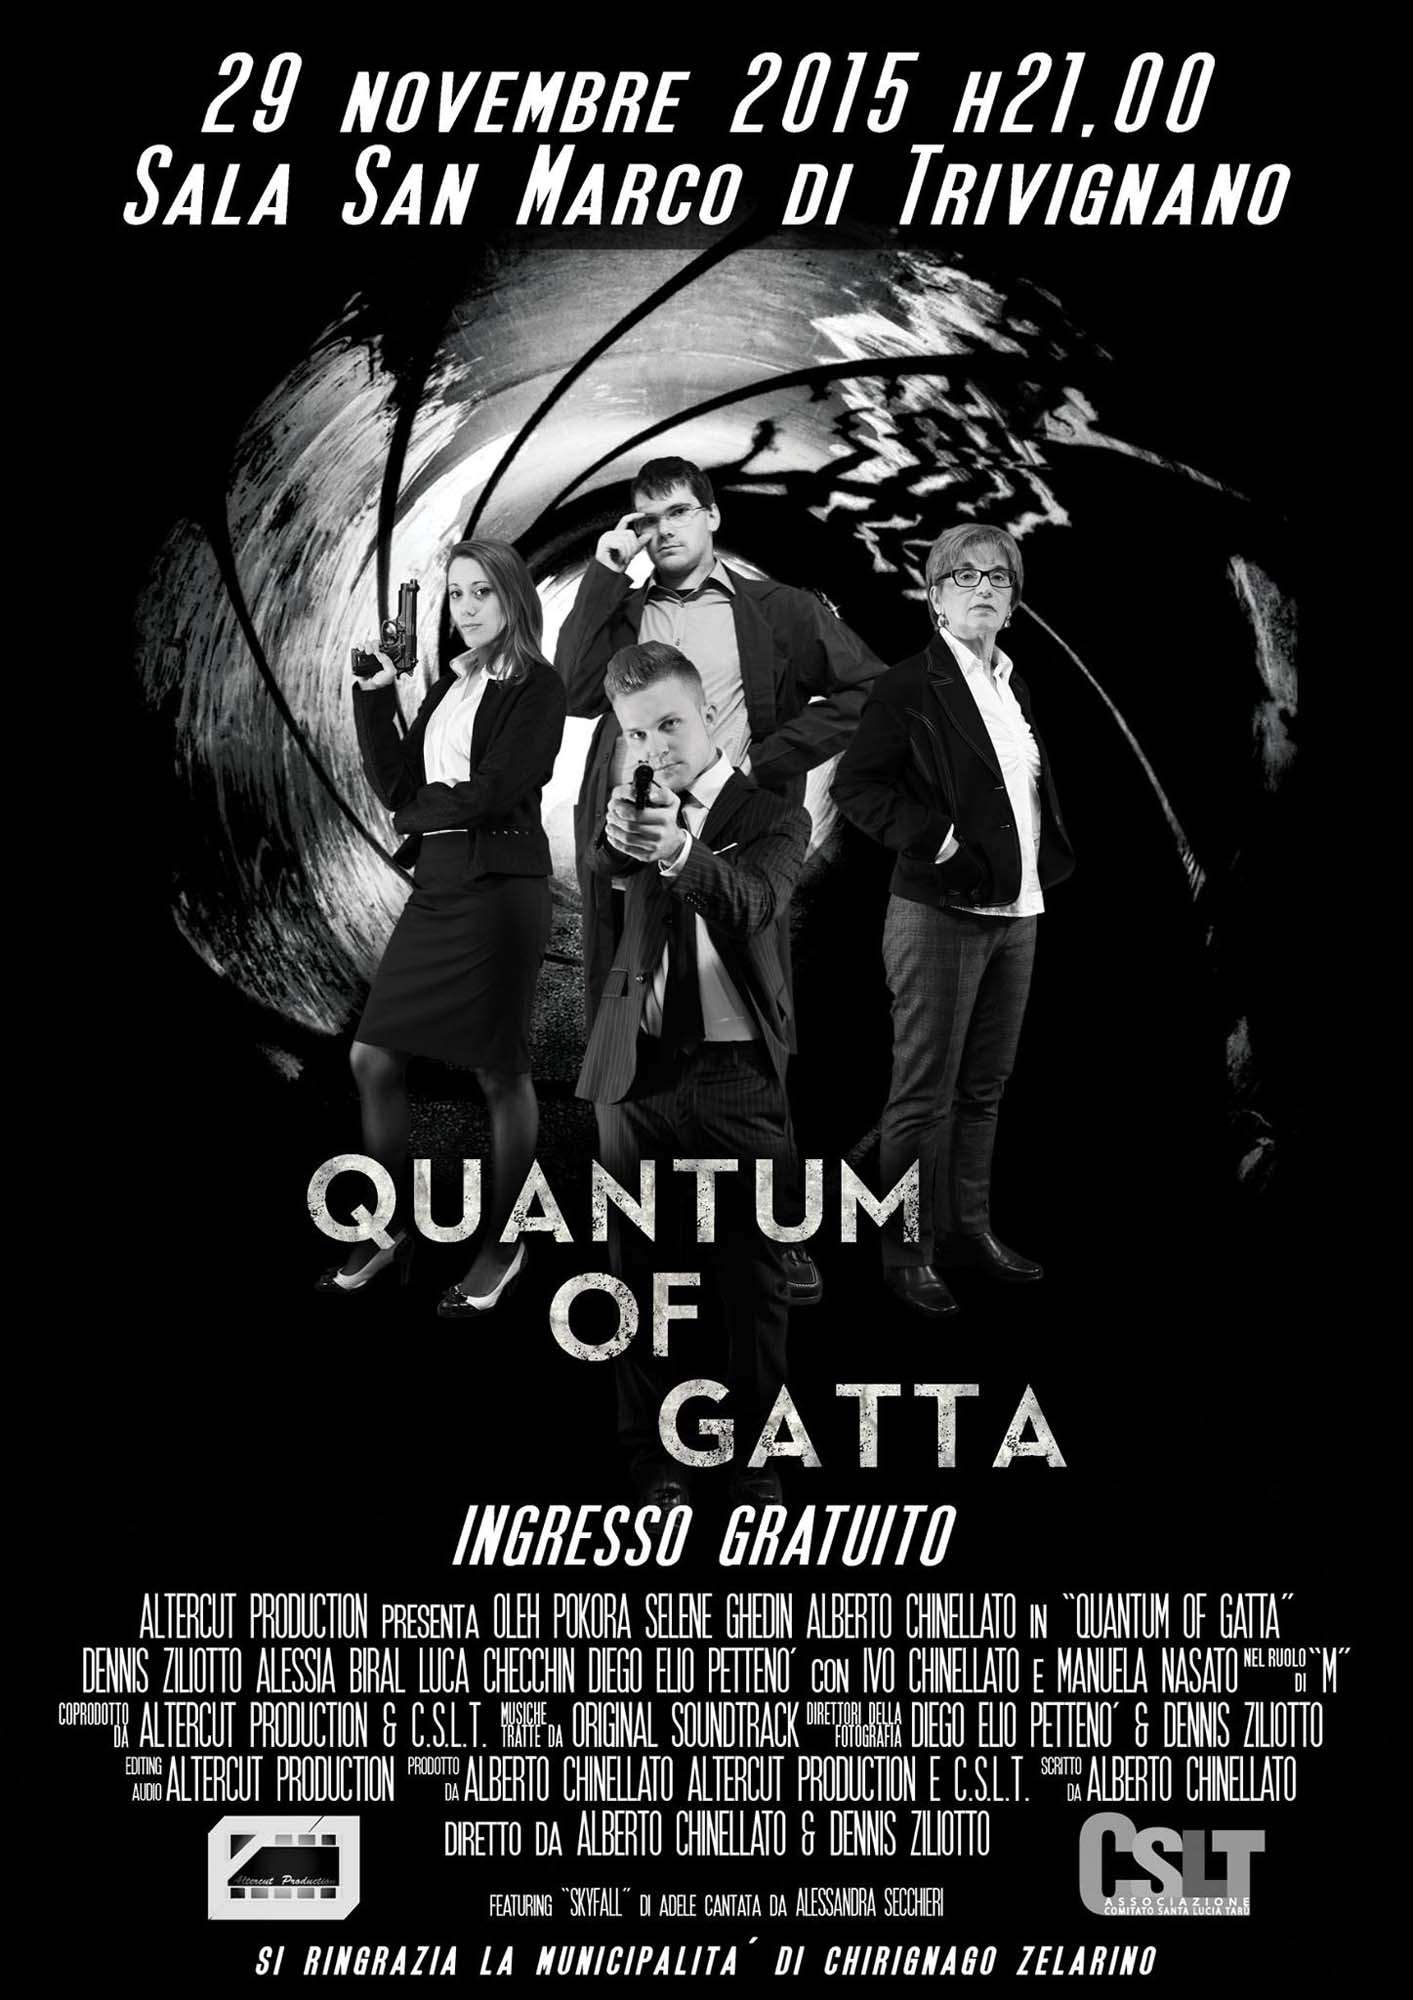 Locandina Quantum of Gatta 007 James Bond Altercut action movie fan movie Venezia